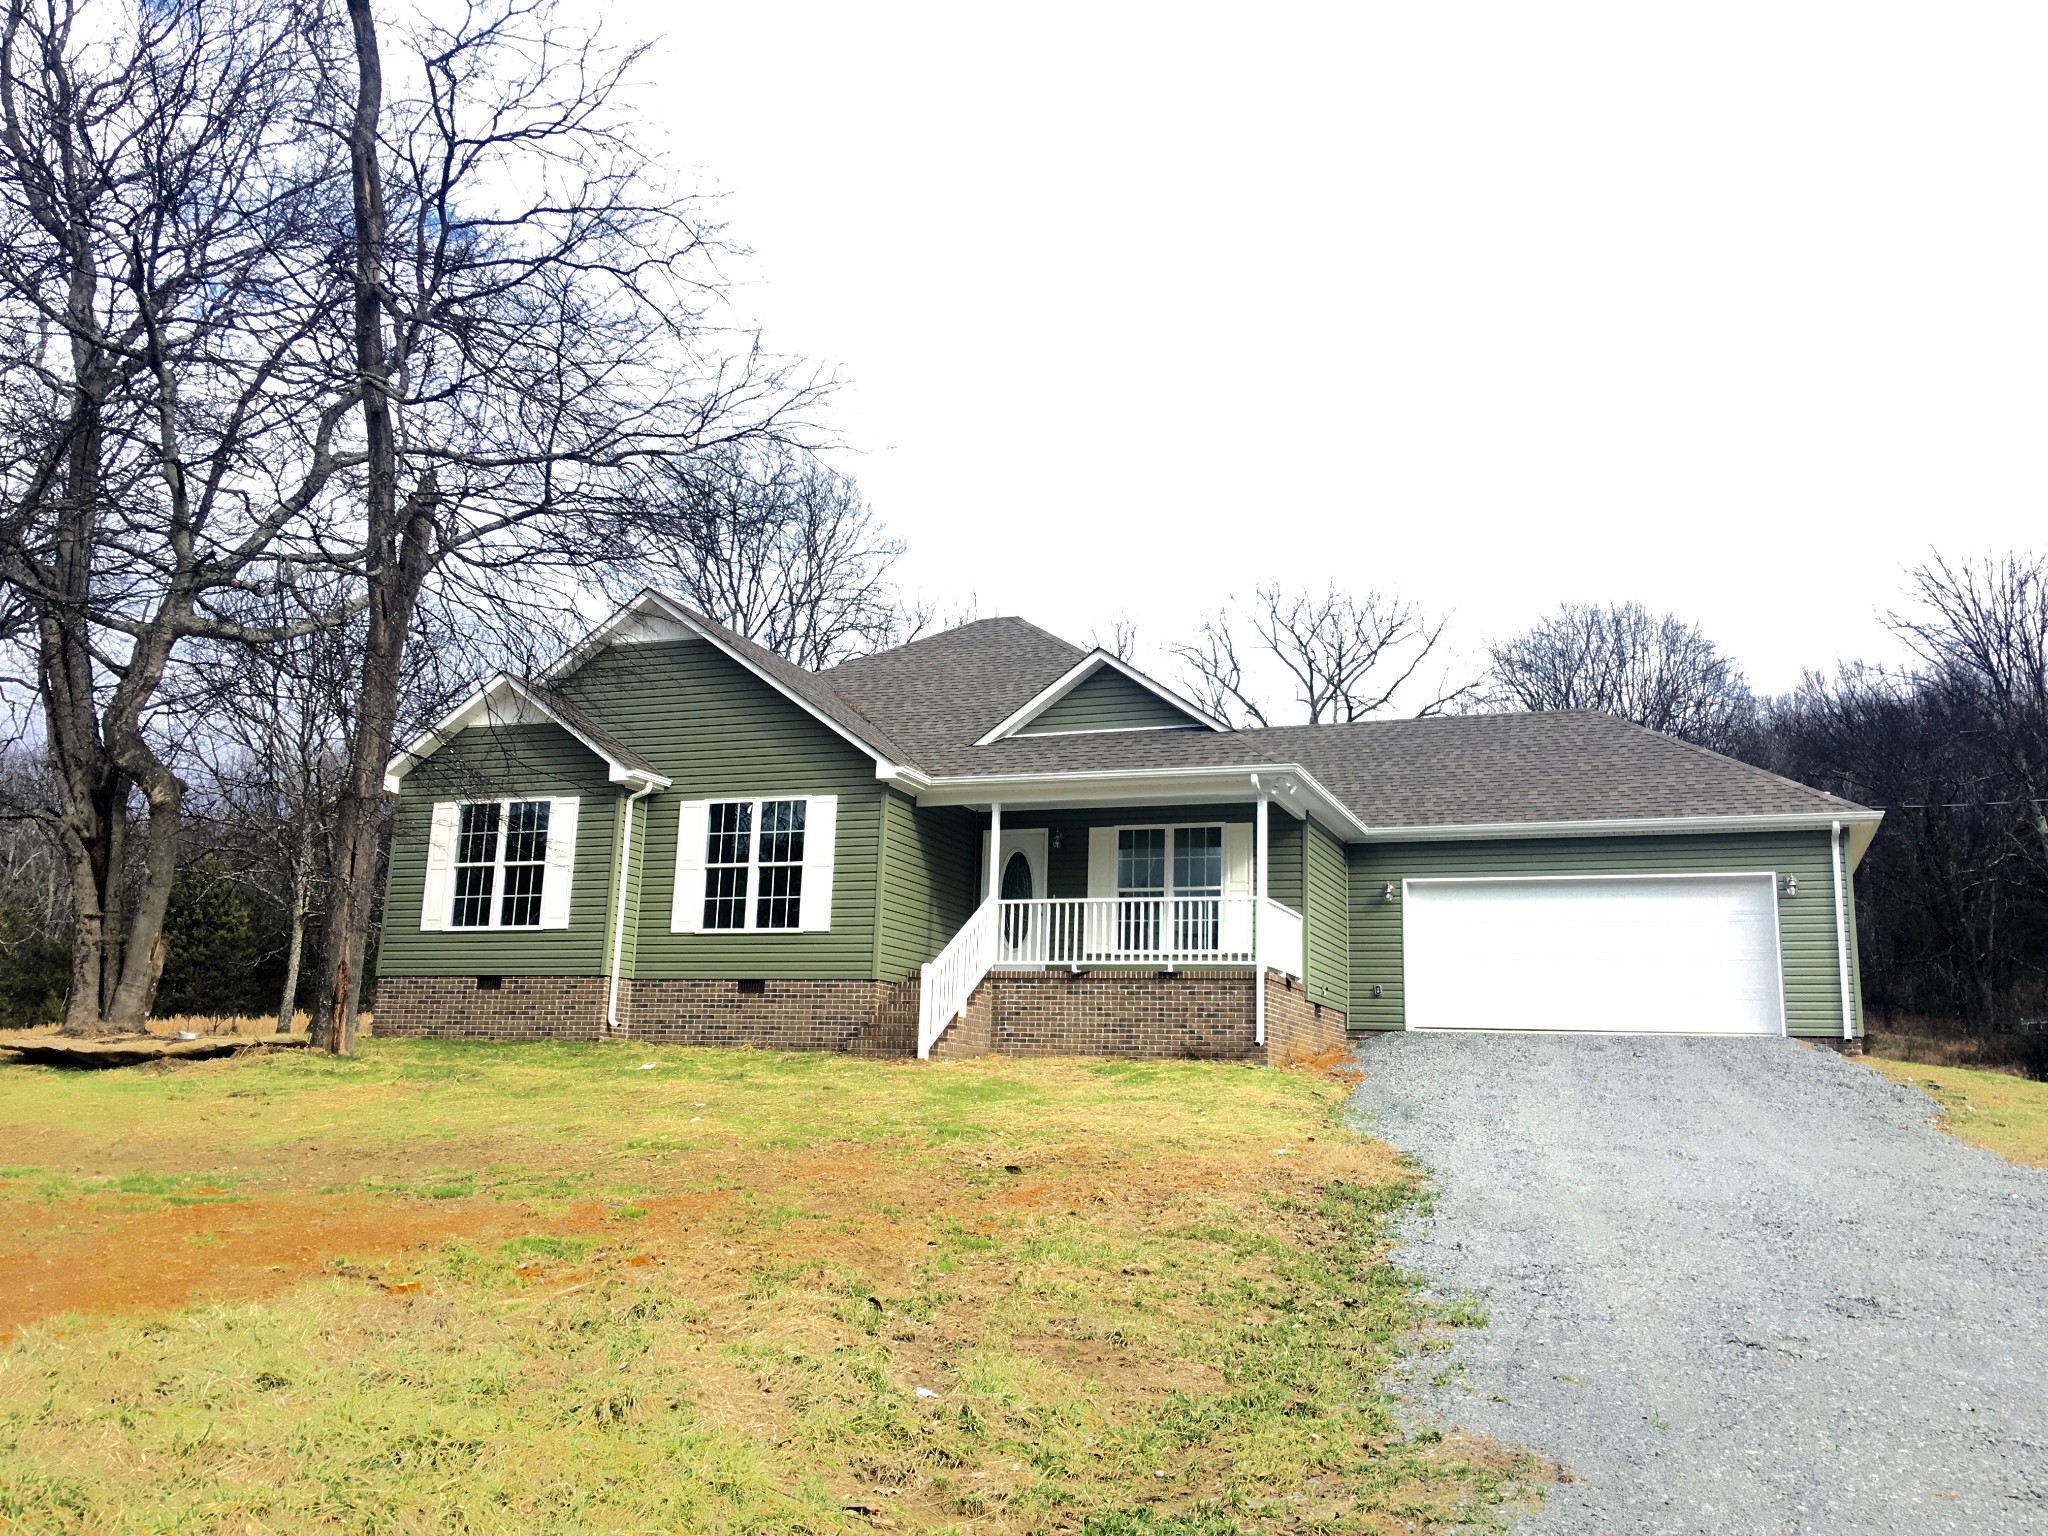 53 Cecil Johnson Rd, Mulberry, TN 37359 - Mulberry, TN real estate listing